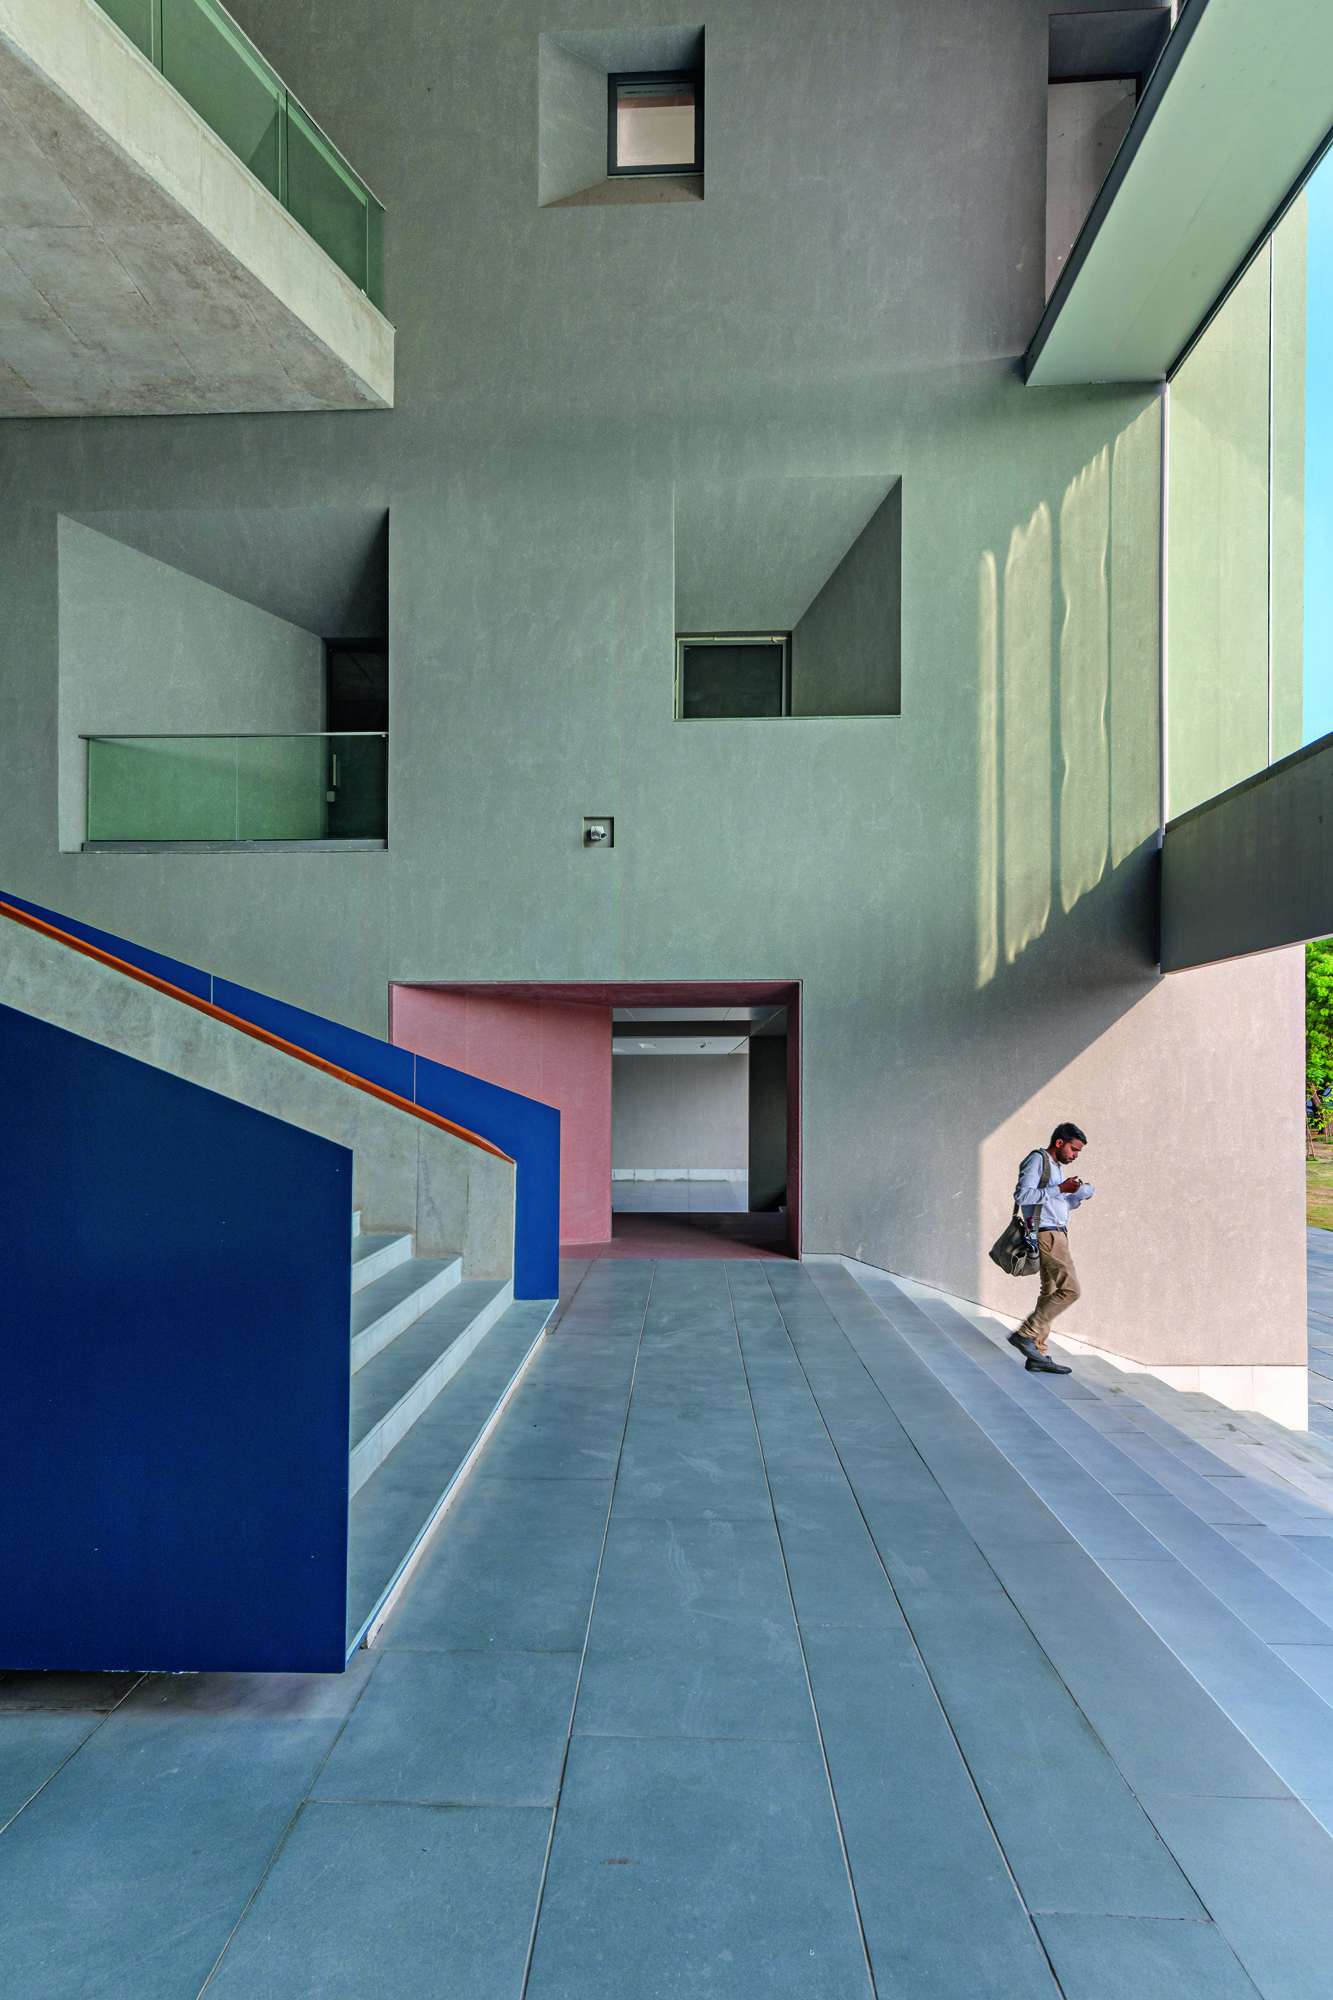 © Vinay Panjwani, courtesy of RMA Architects